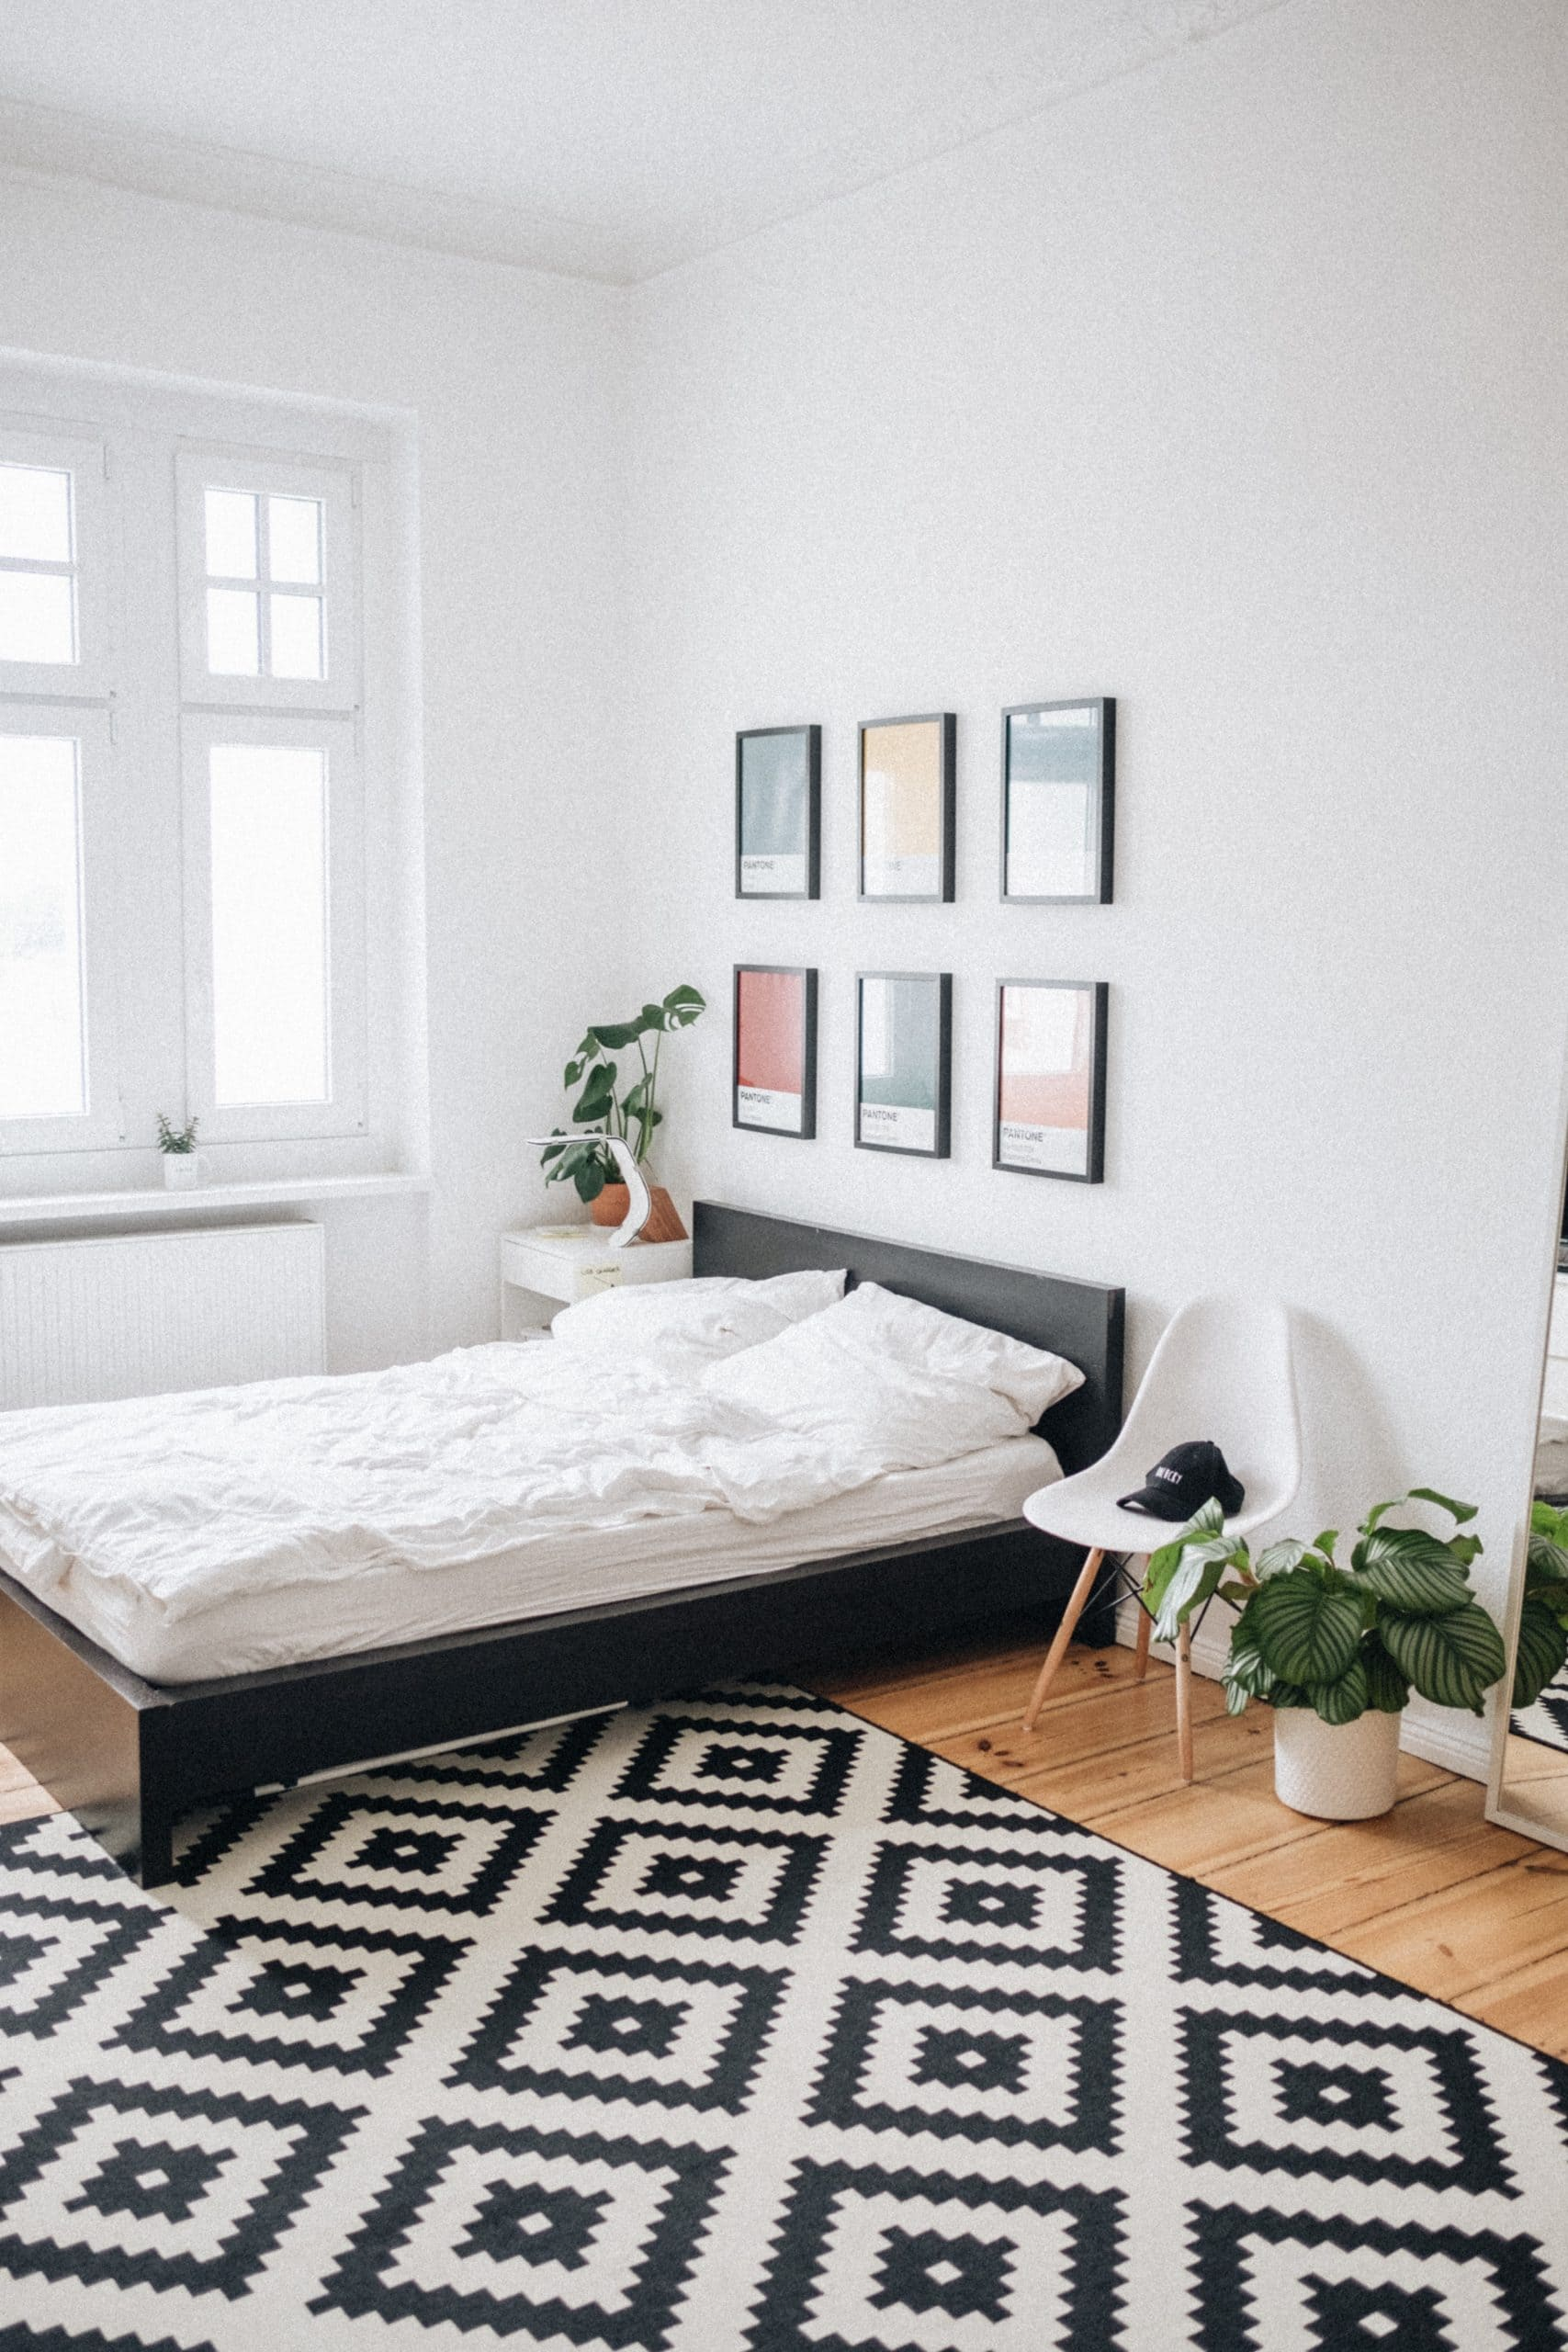 It's Time to Make Your Bedroom More Grownup